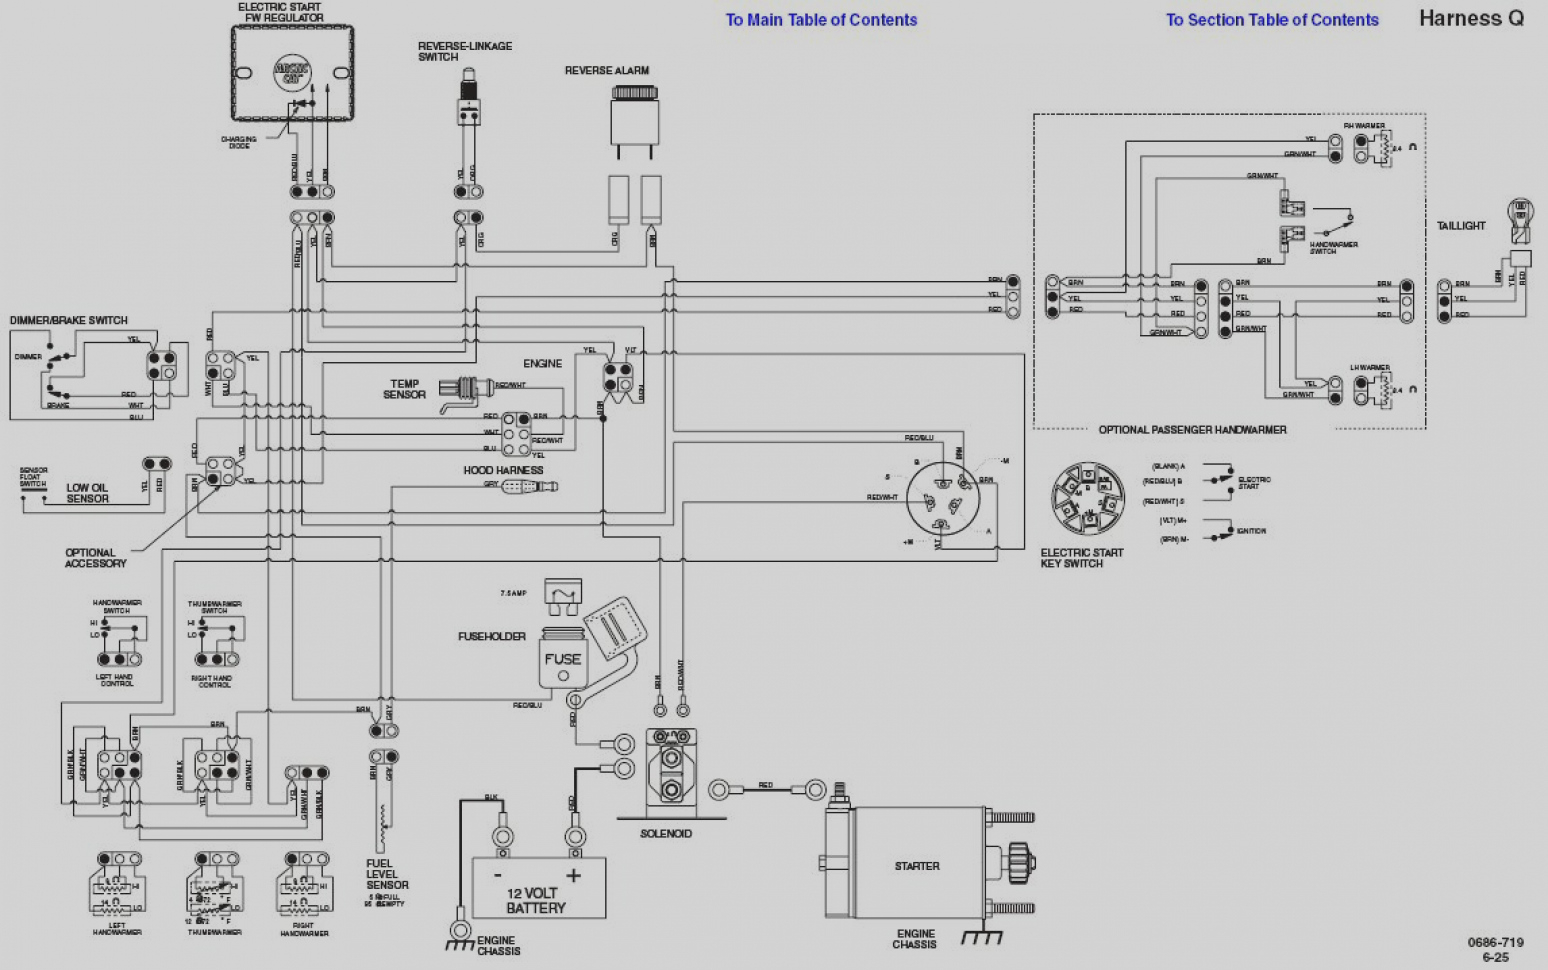 Diagram Old Snowmobile Wiring Diagrams Full Version Hd Quality Wiring Diagrams Diagramsfung Noidimontegiorgio It